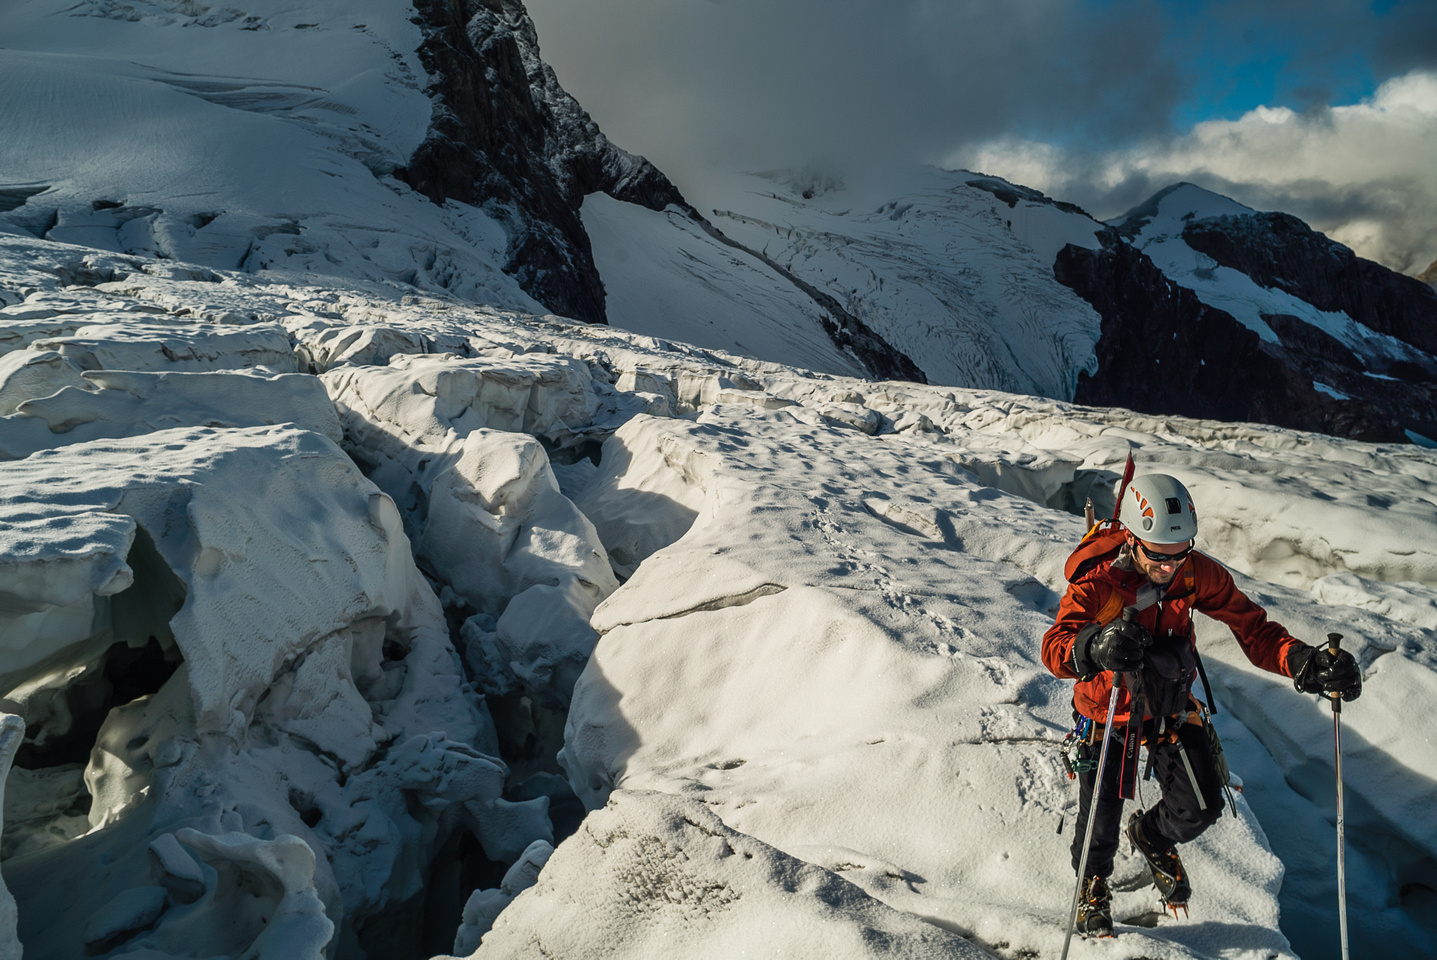 We stayed unroped on the section of glacier where the holes were obvious, but on return we kept the rope on here thanks to deteriorating snow conditions.